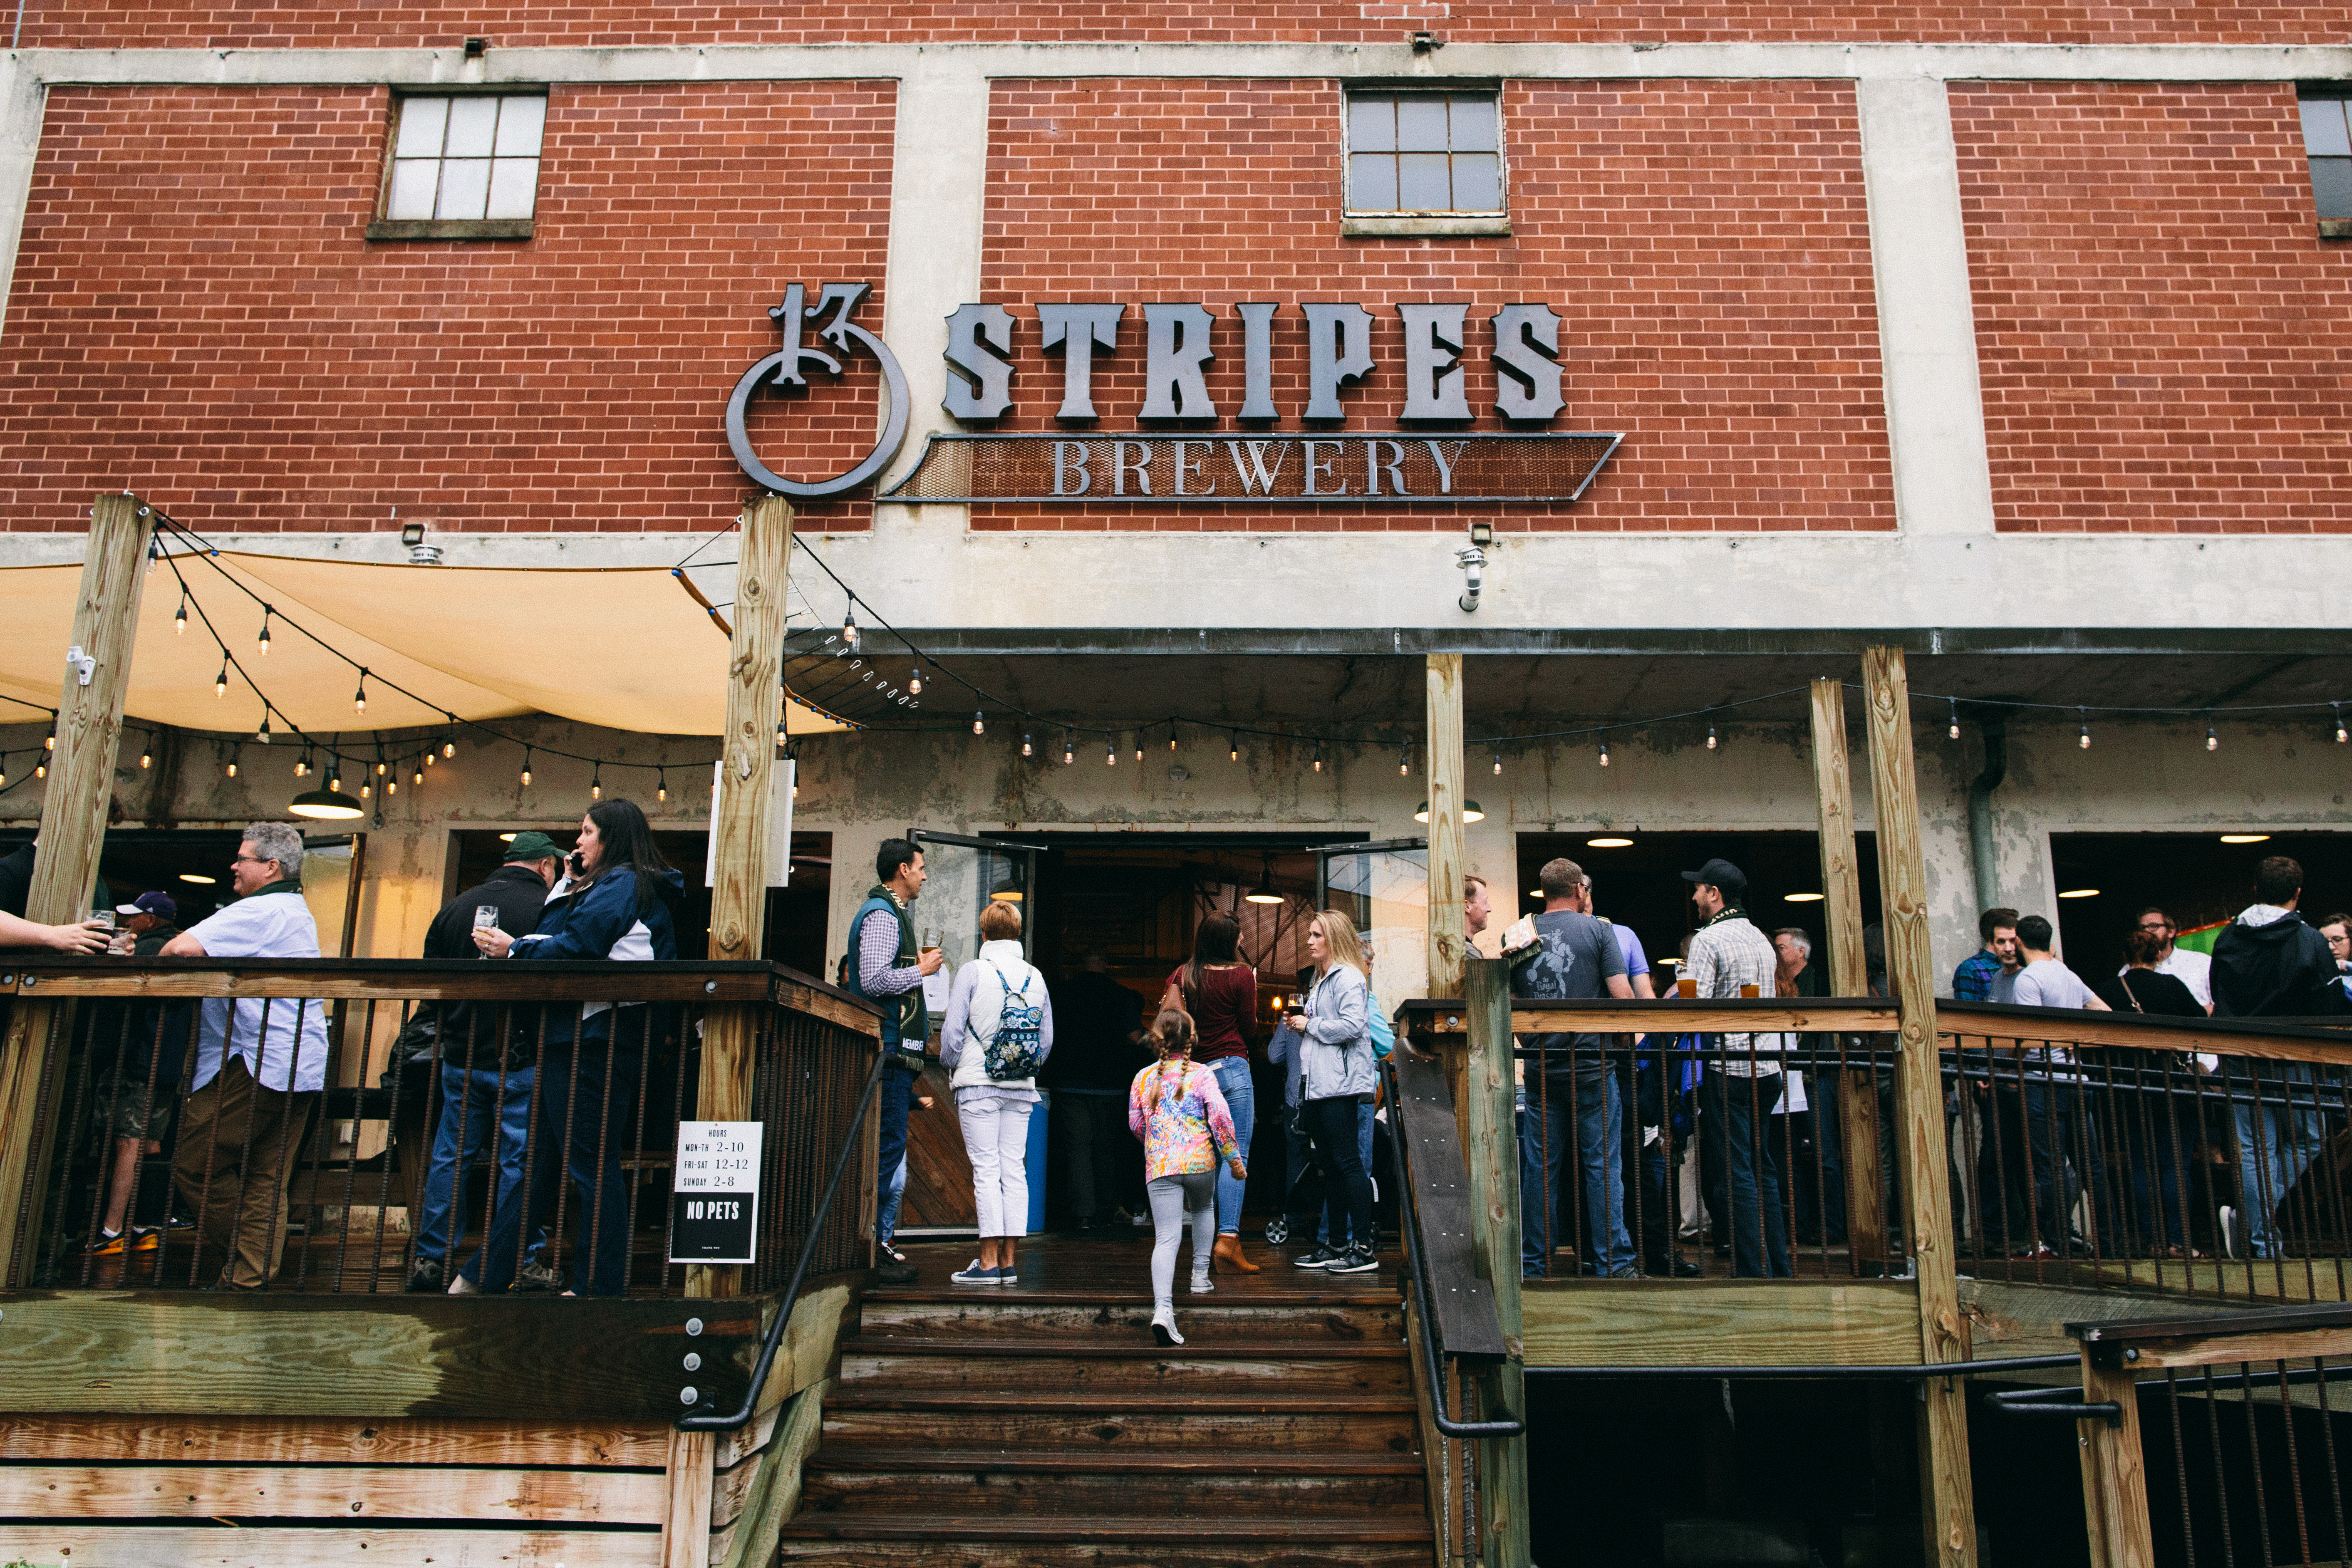 GREENVILLE FC AND 13 STRIPES BREWERY ANNOUNCE PARTNERSHIP EXTENSION